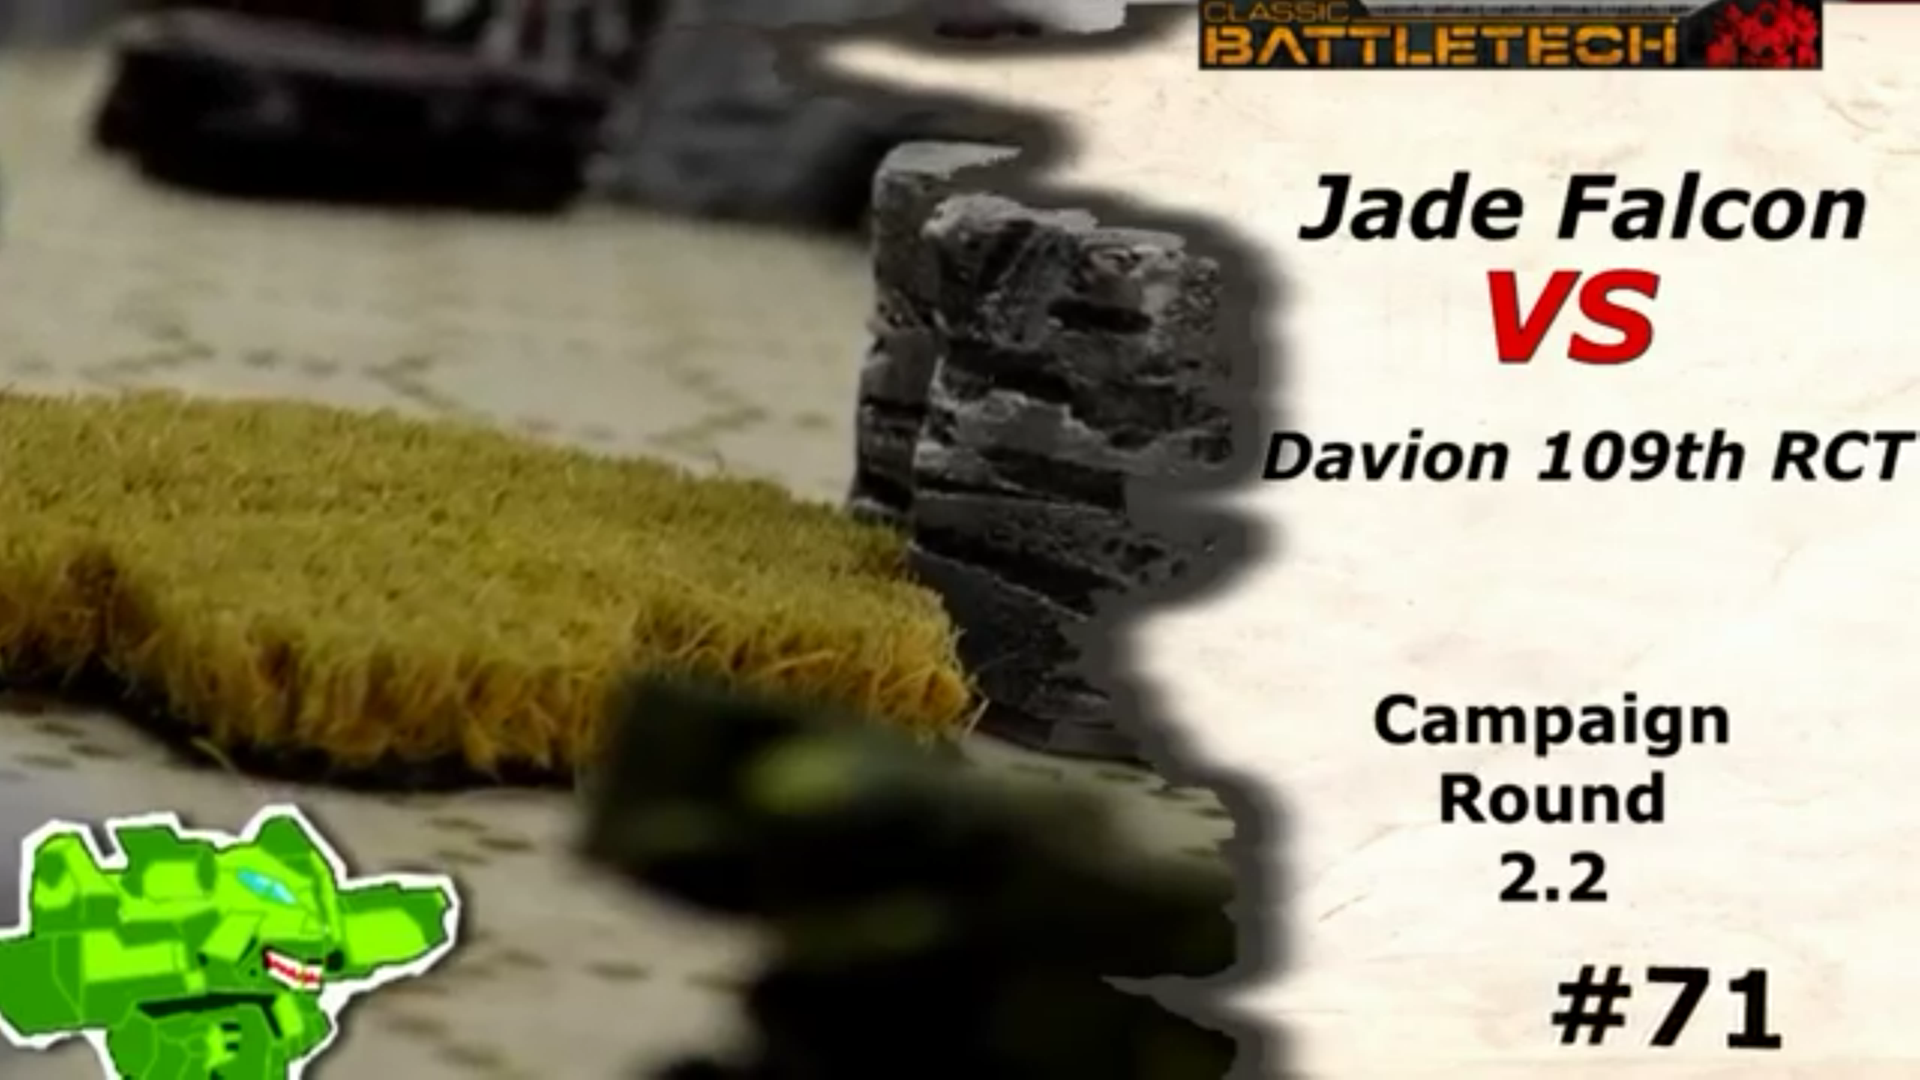 #71 Jade Falcon vs. Davion 109th RCT